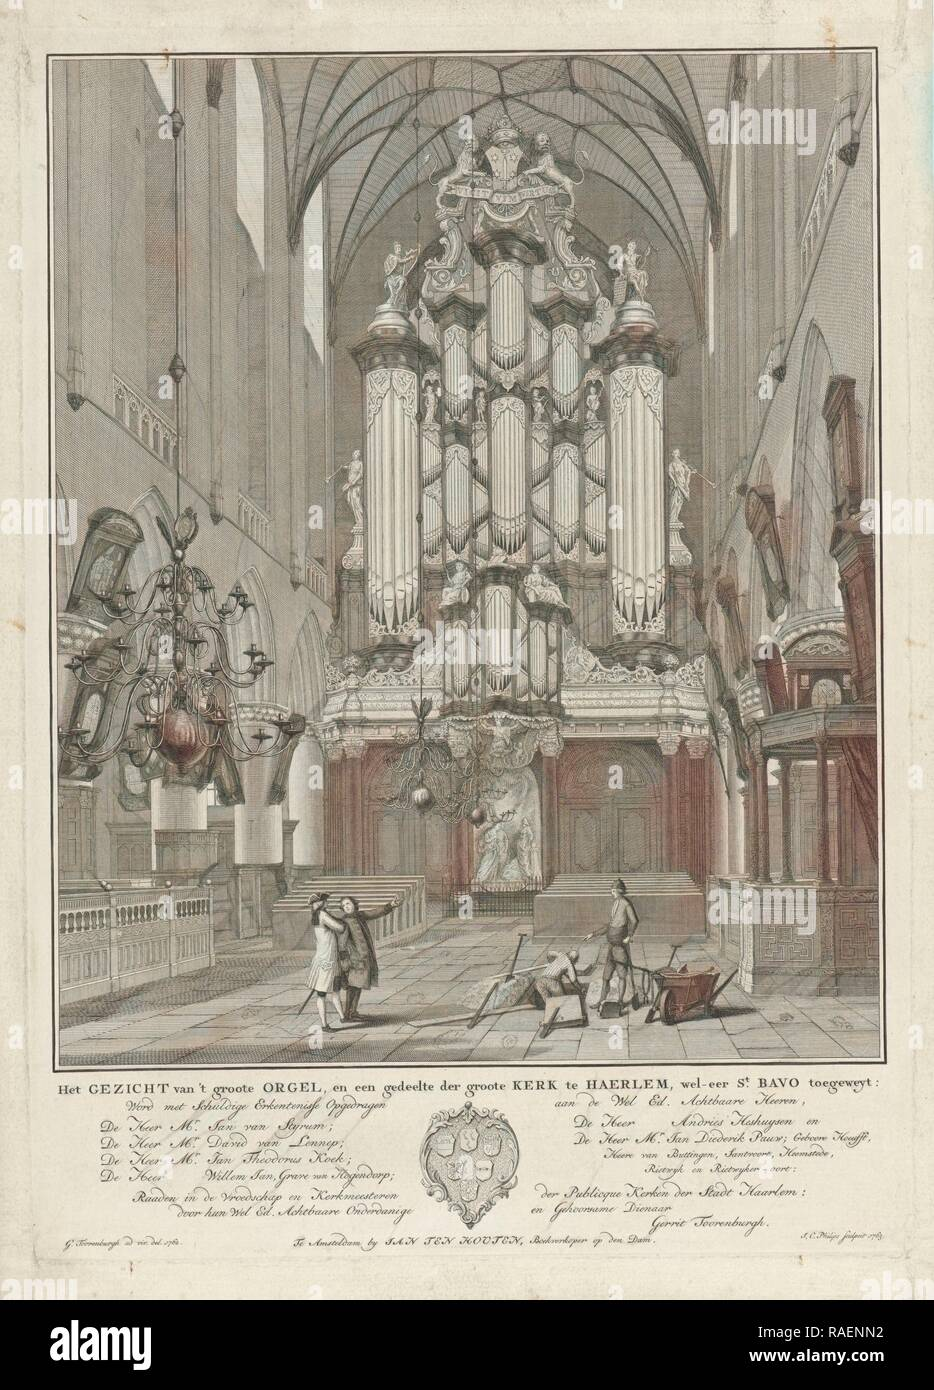 Organ of St. Bavo Church in Haarlem, Jan Caspar Philips, Jan ten Houten, Gerrit Toorenburg. Reimagined Stock Photo